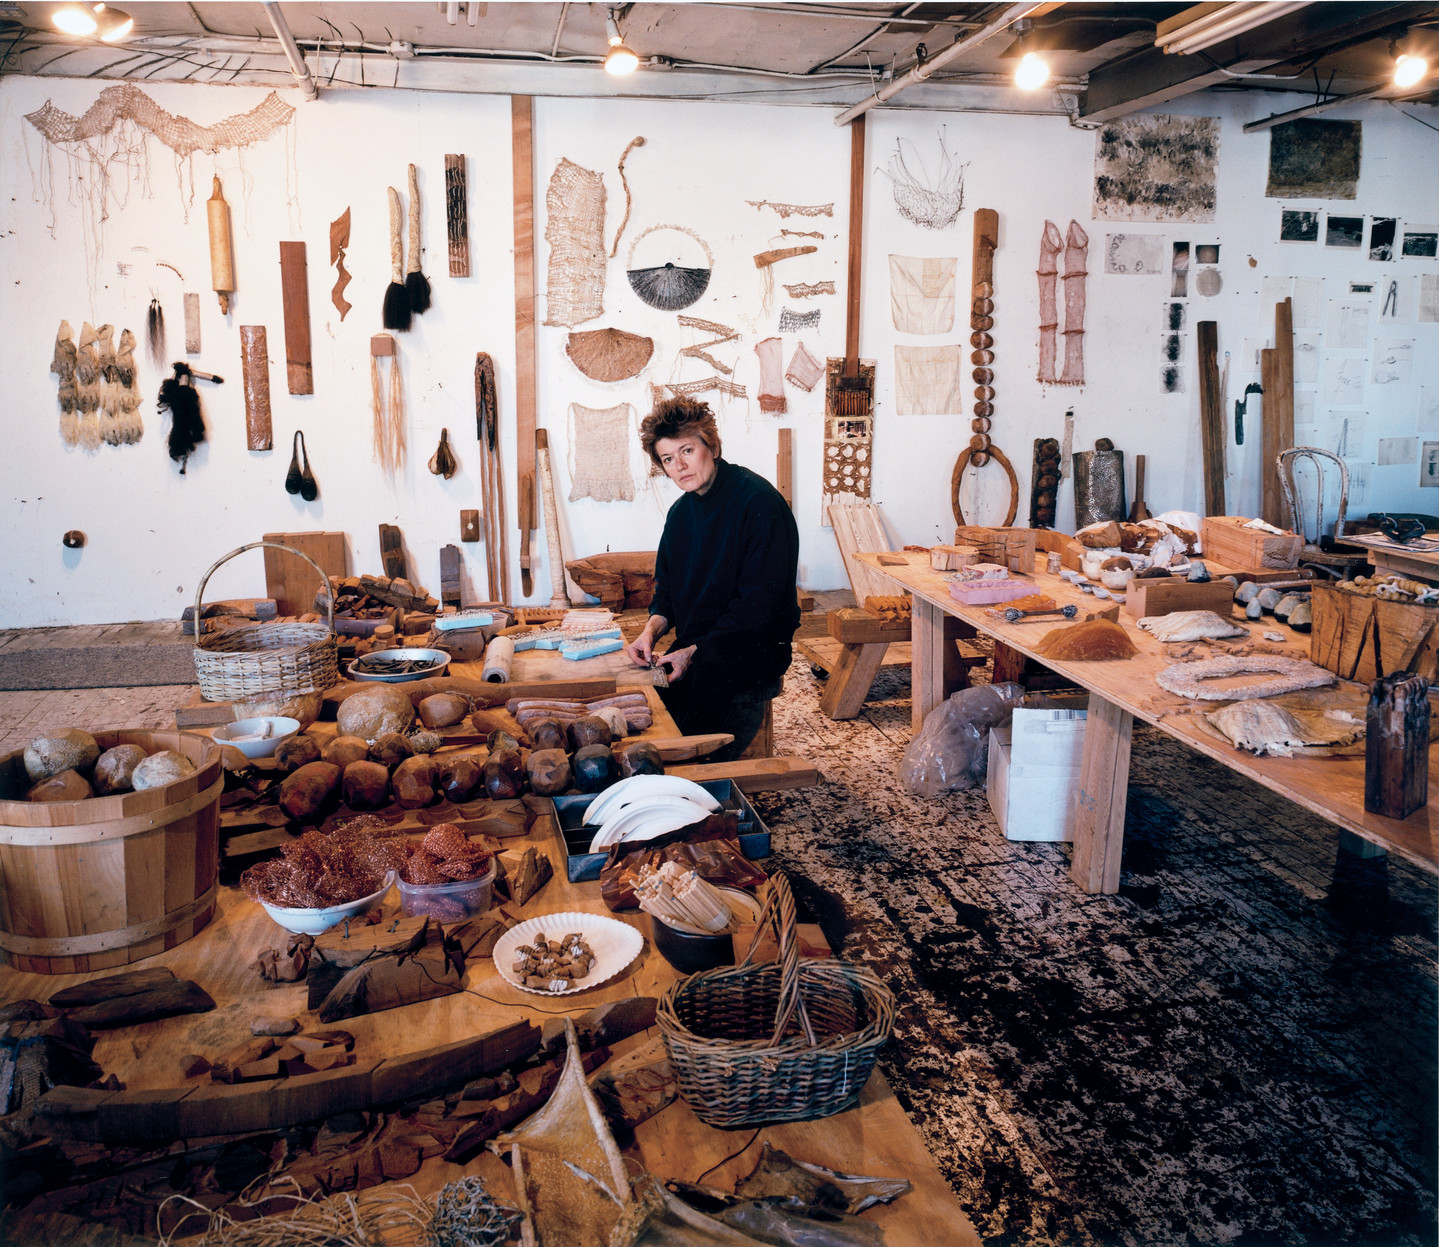 A light-skinned woman with close-cropped hair stands between two large plywood tables, looking up from her work. The tables and walls are filled with natural objects and artworks, including hanging weavings, spools of thread, carved wooden rocks, and wicker baskets.